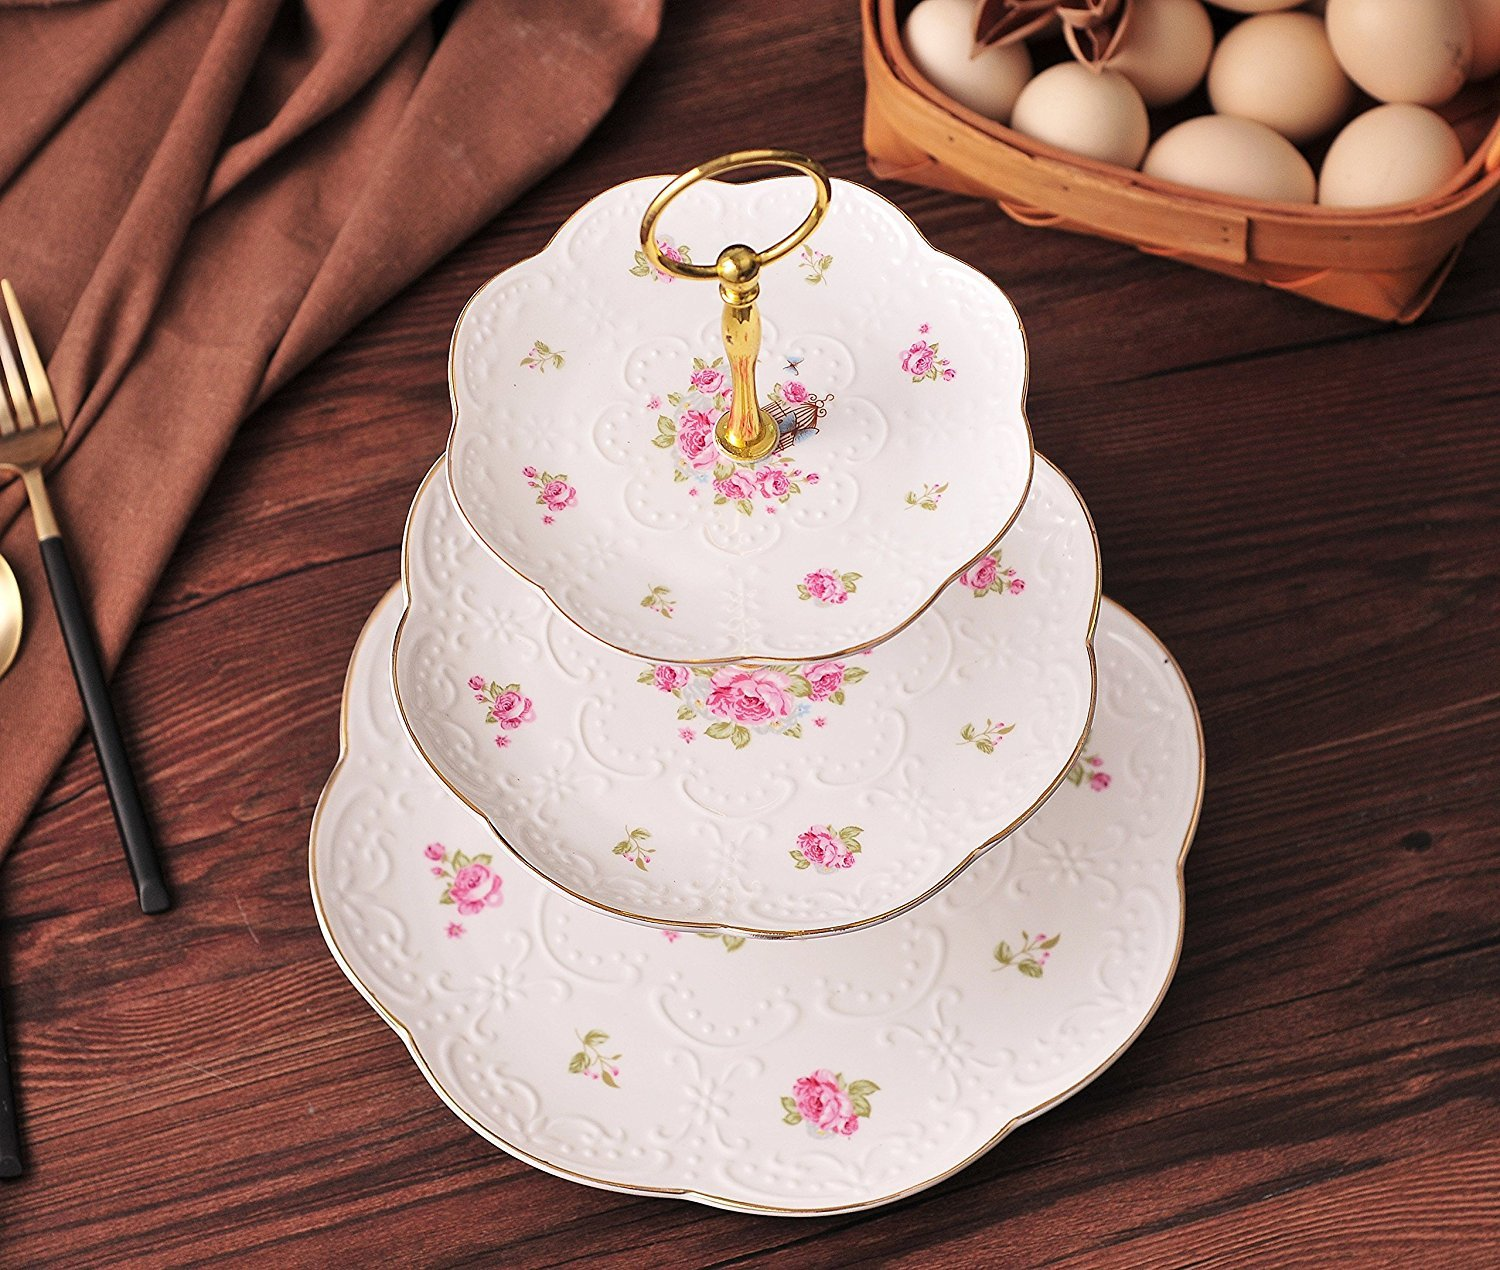 3 Tier Jusalpha Elegant Embossed Porcelain 3-tier Cake Stand// Cupcake Stand// Tea Party Pastry Serving platter in Gift Box FL-Stand 03